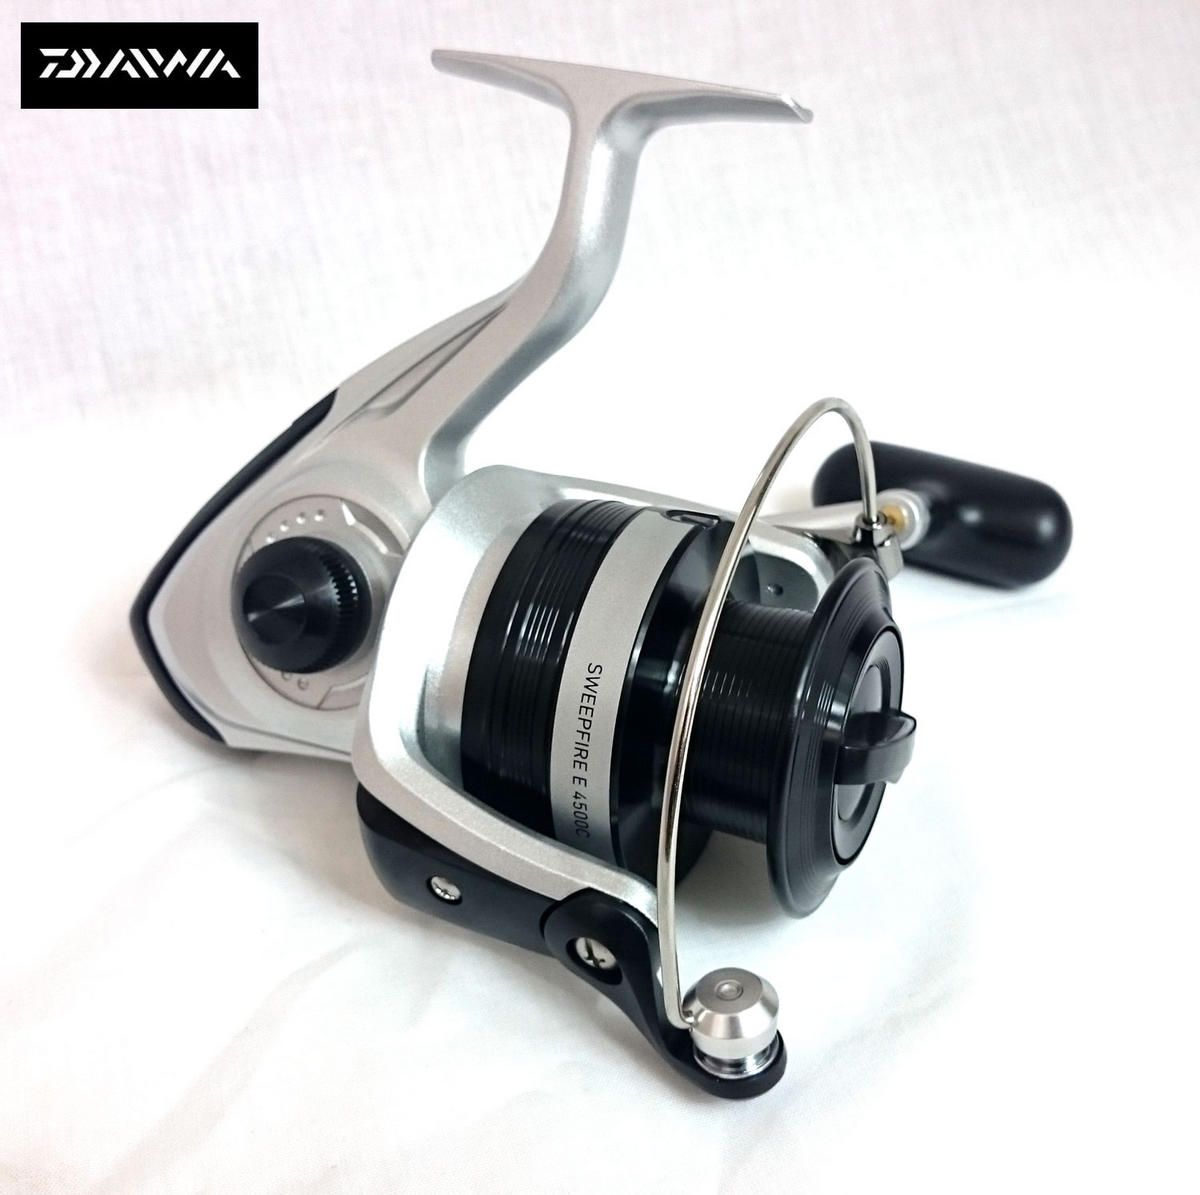 NEW DAIWA SWEEPFIRE E 4500C FISHING SPINNING REEL Model No. SWE4500C